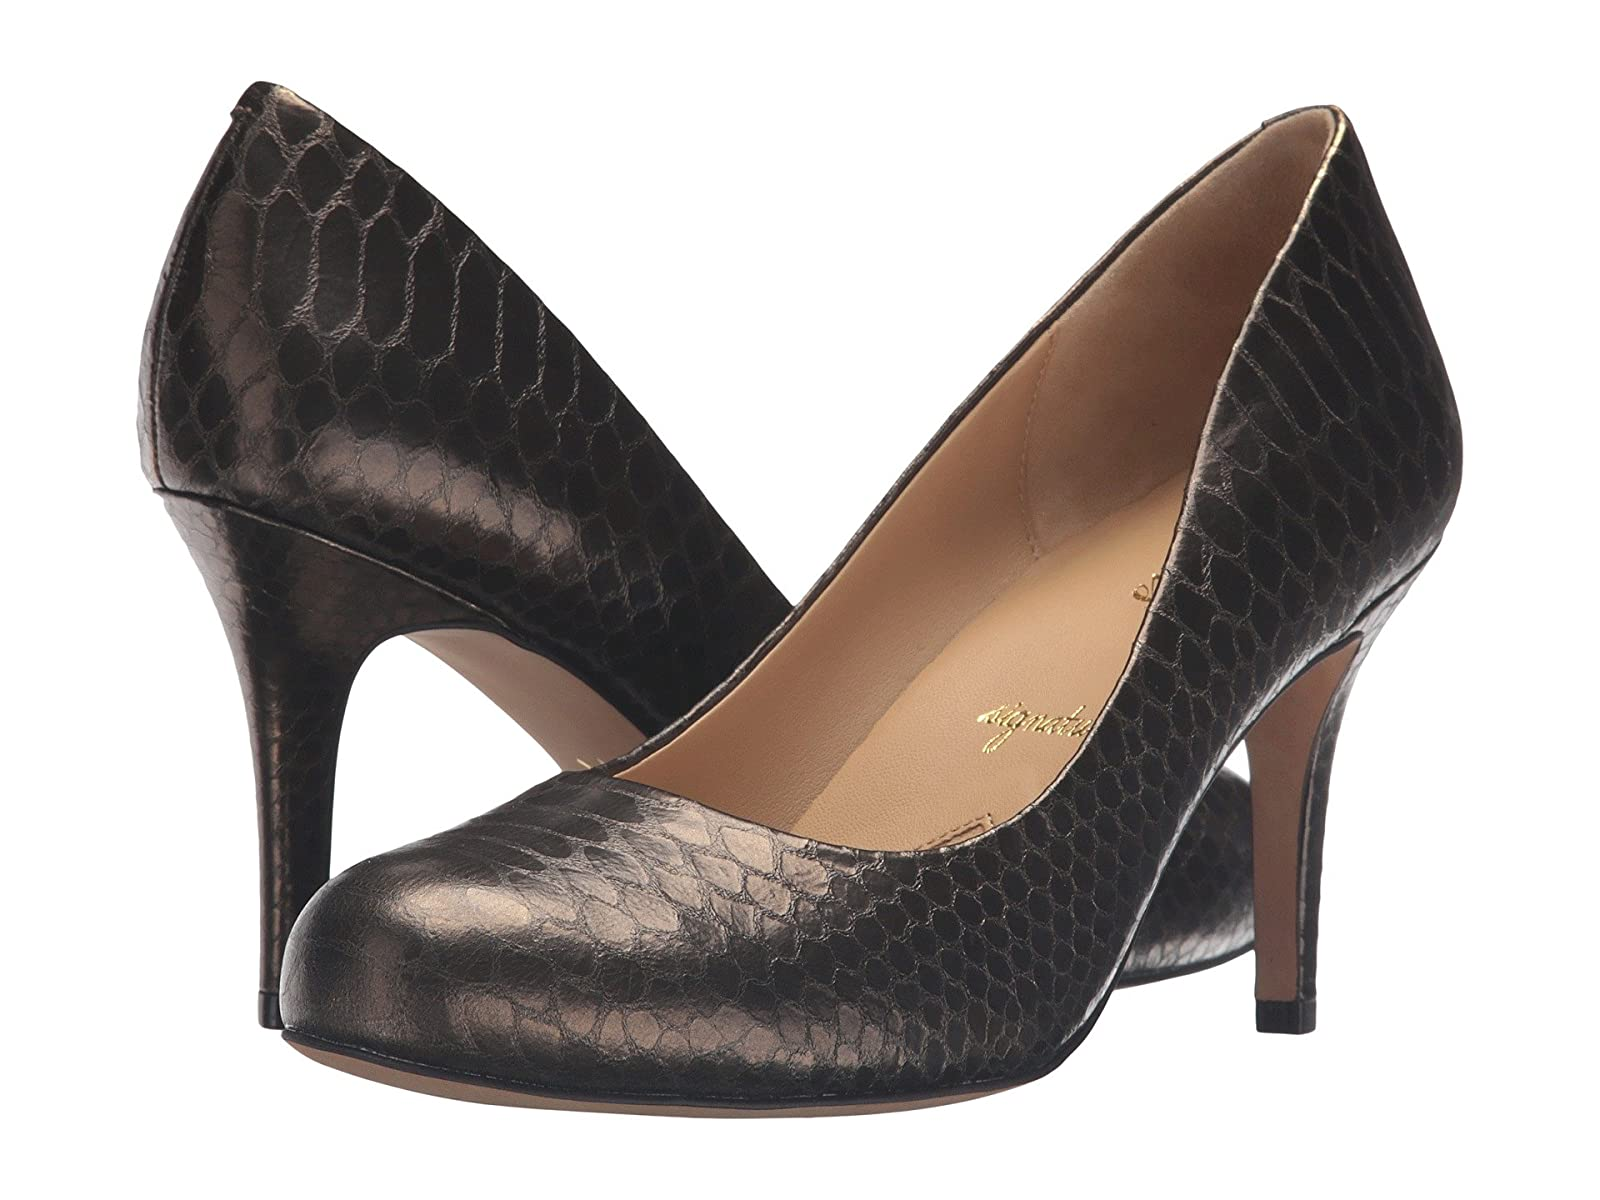 Trotters GigiCheap and distinctive eye-catching shoes